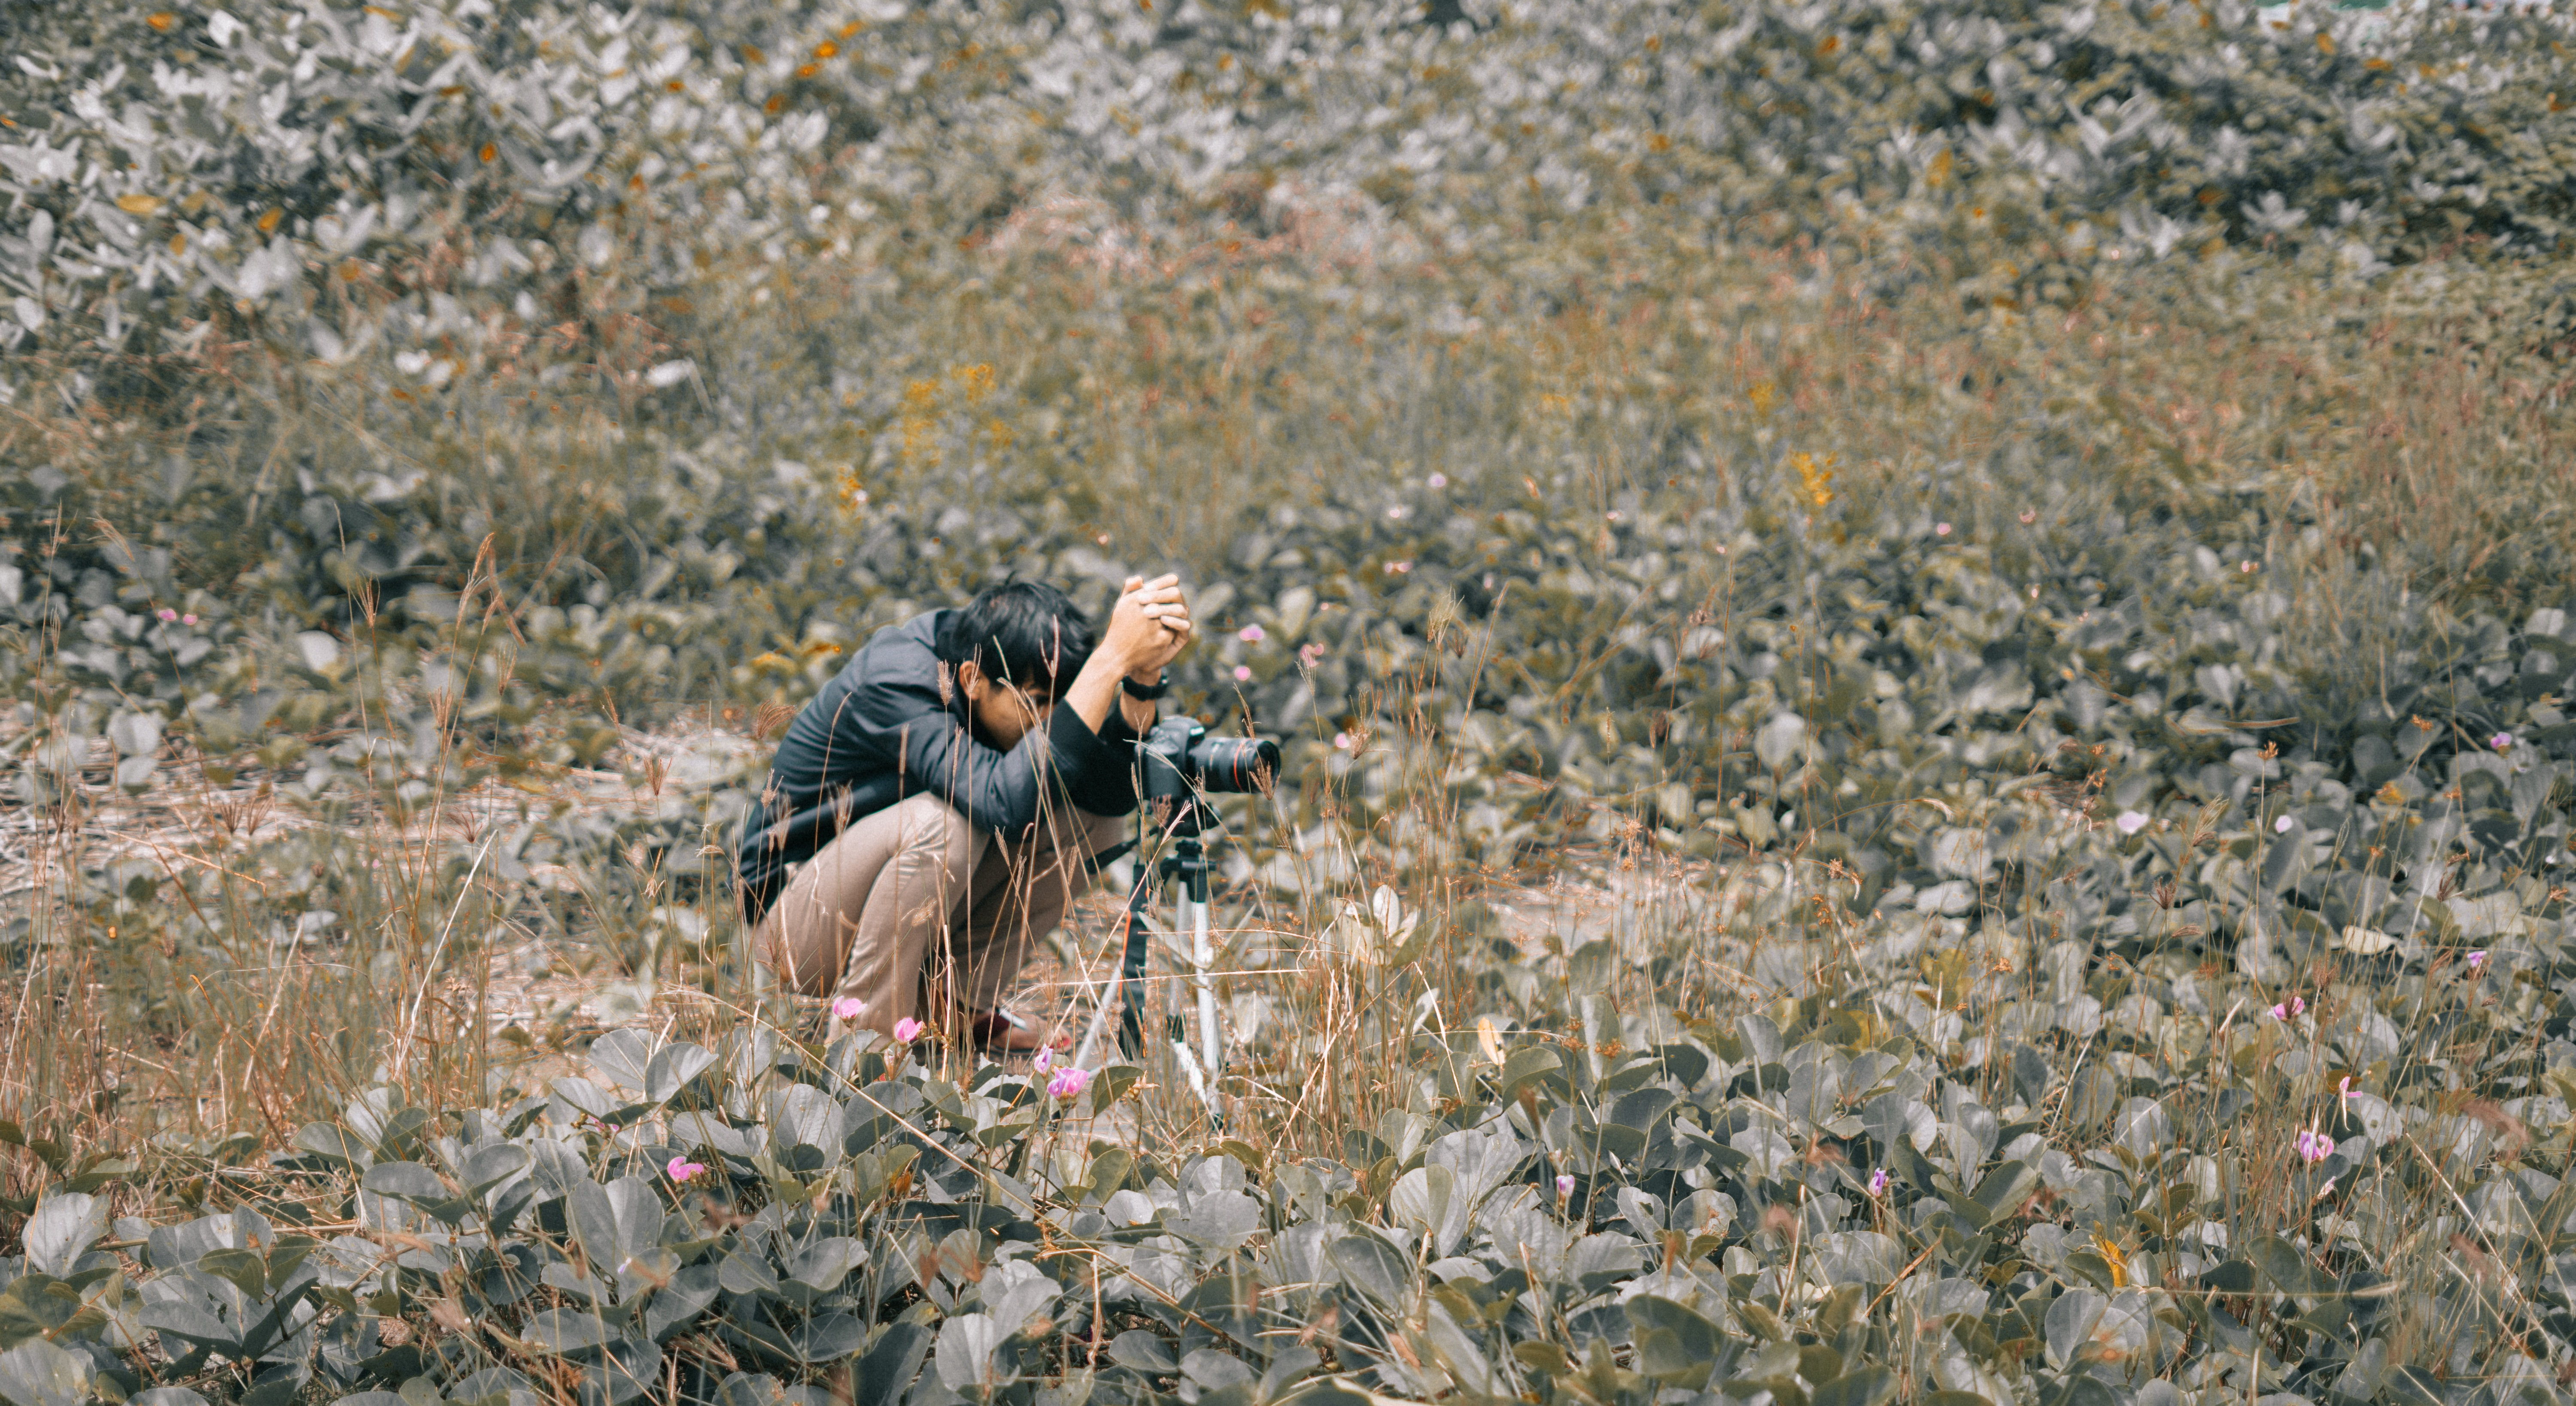 Man Wearing Black Jacket Squatting on Grass Field, Camera, Nature, Scenic, Rural, HQ Photo